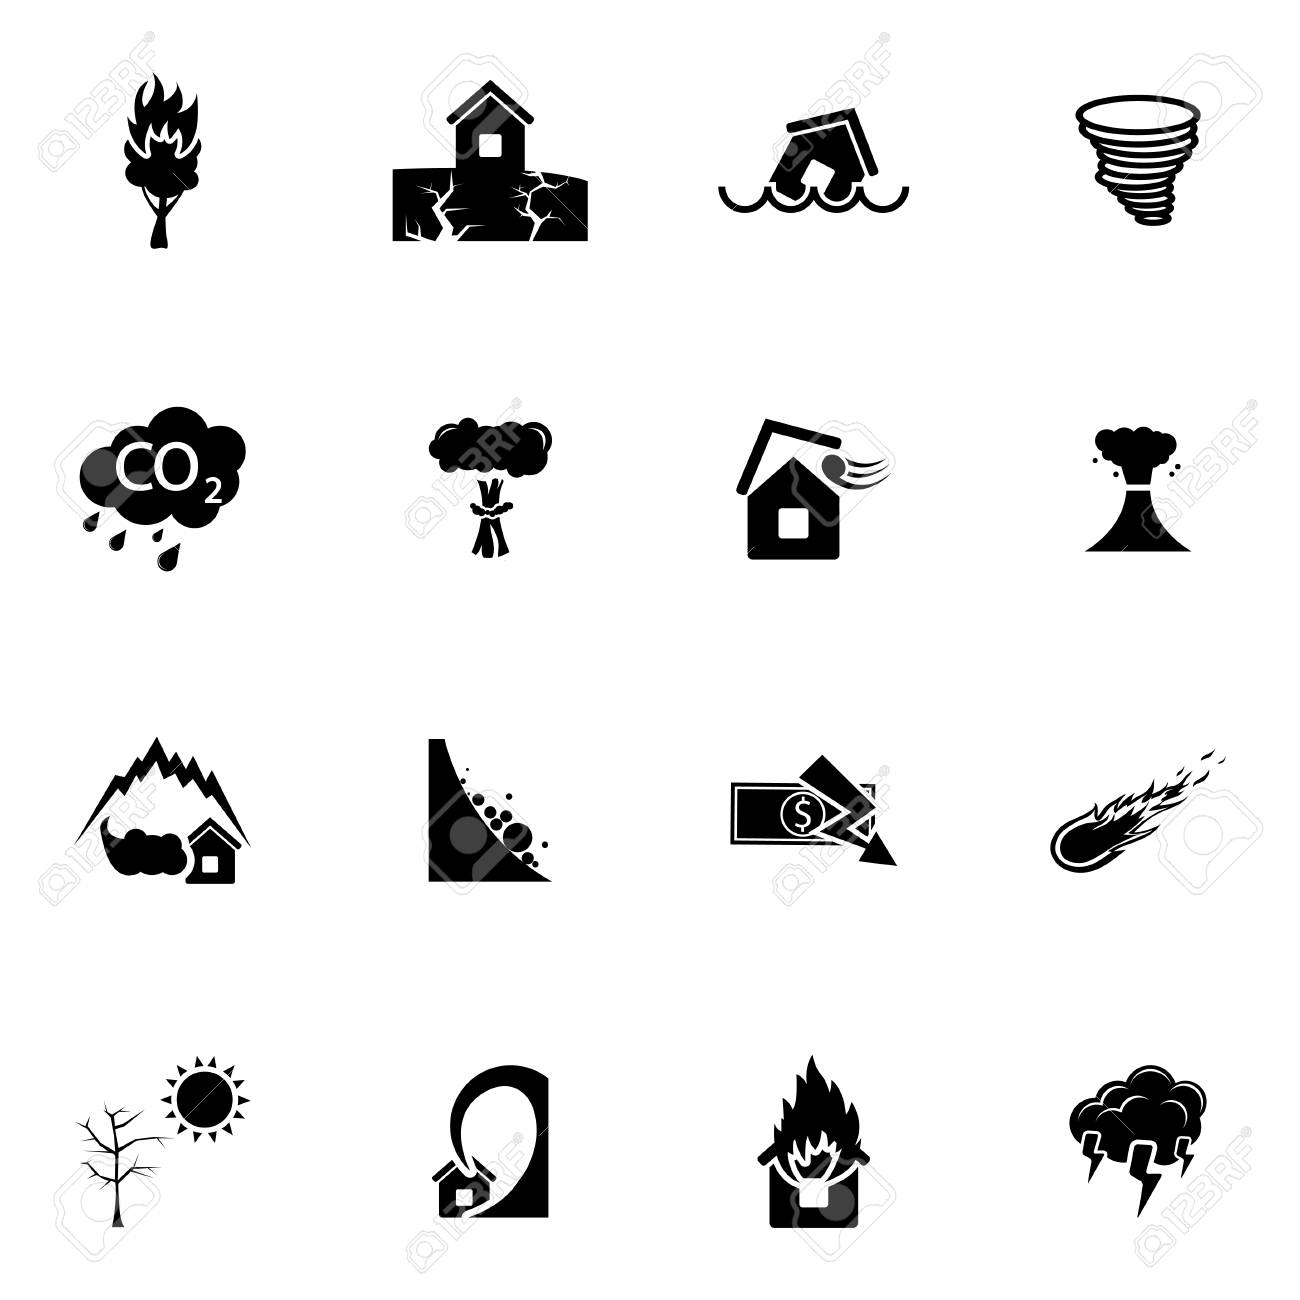 Vector black  disaster icons set on white background Stock Vector - 27352764